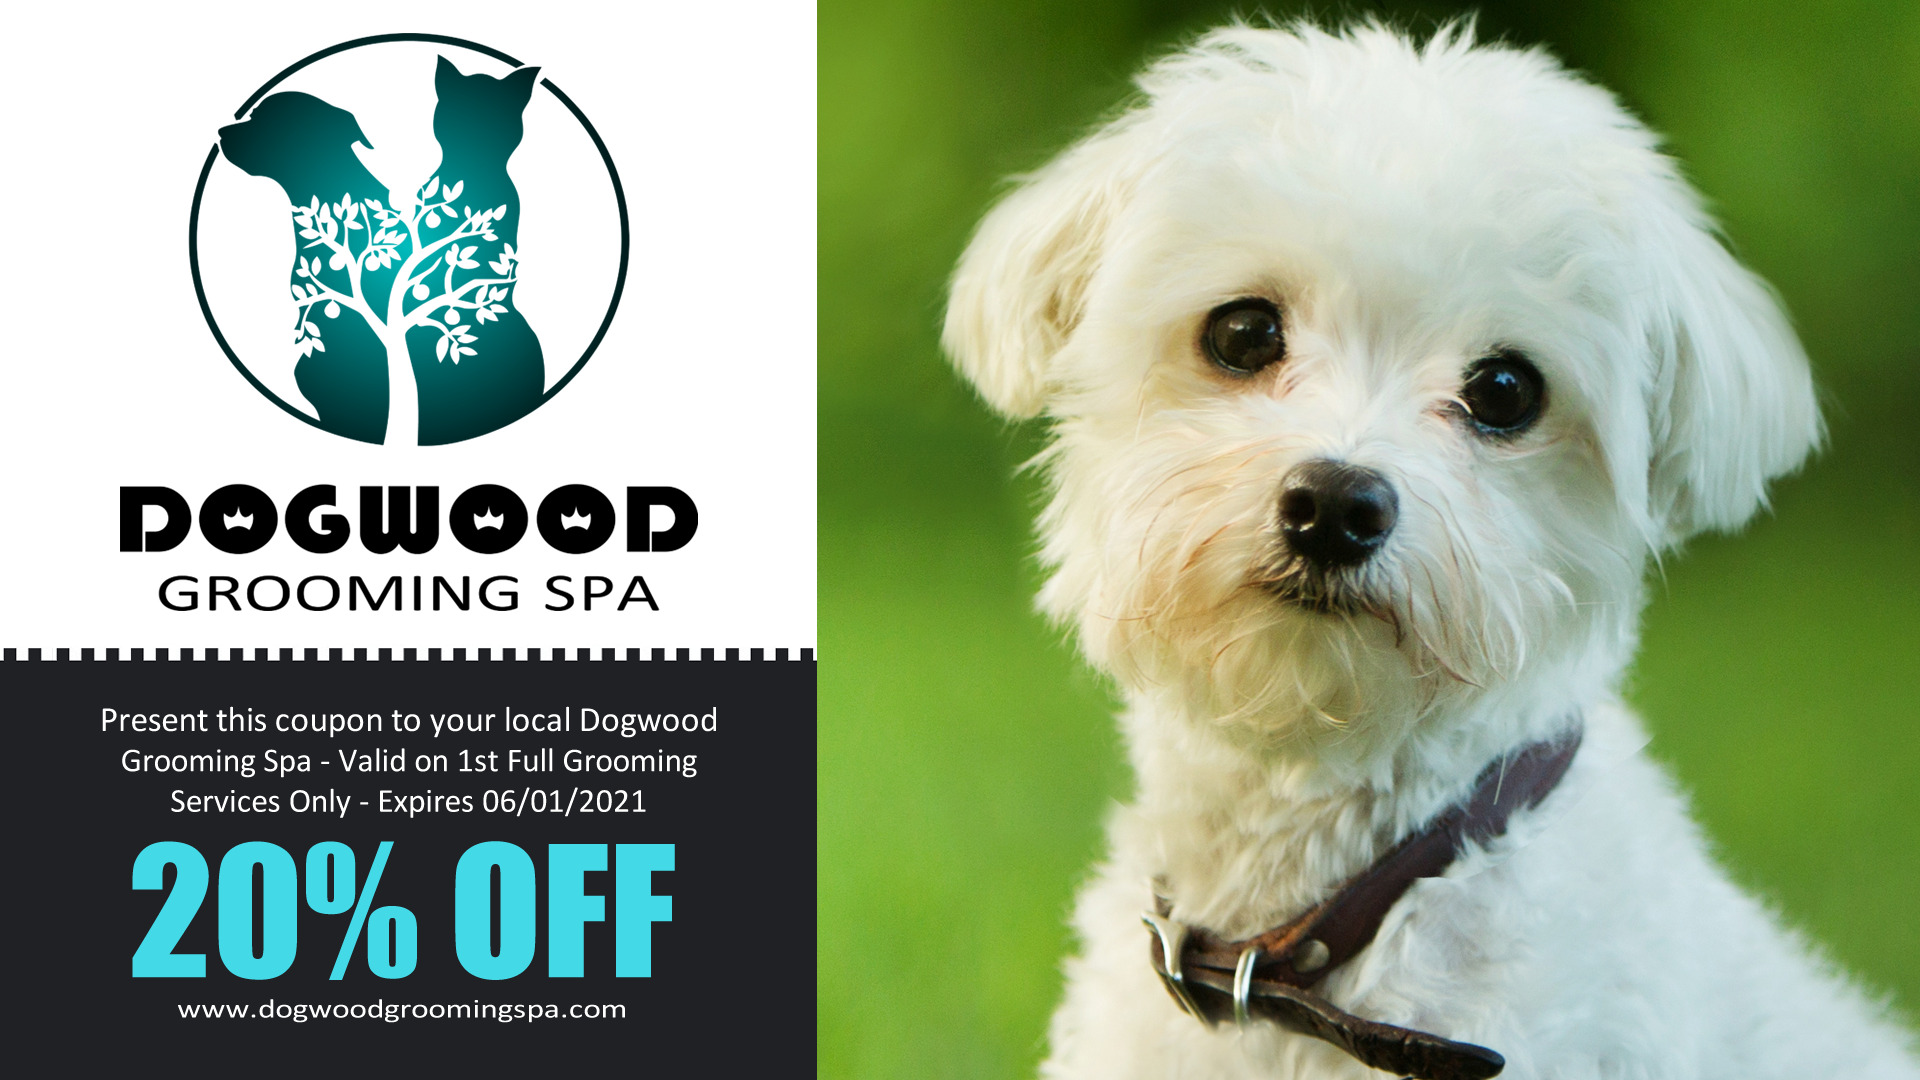 Dogwood Grooming Spa LLC on Best In Search | Professional Pet Groomer in Knoxville Tn | Offering Full Dog Grooming, Creative Pet Coloring, and Pet Boarding